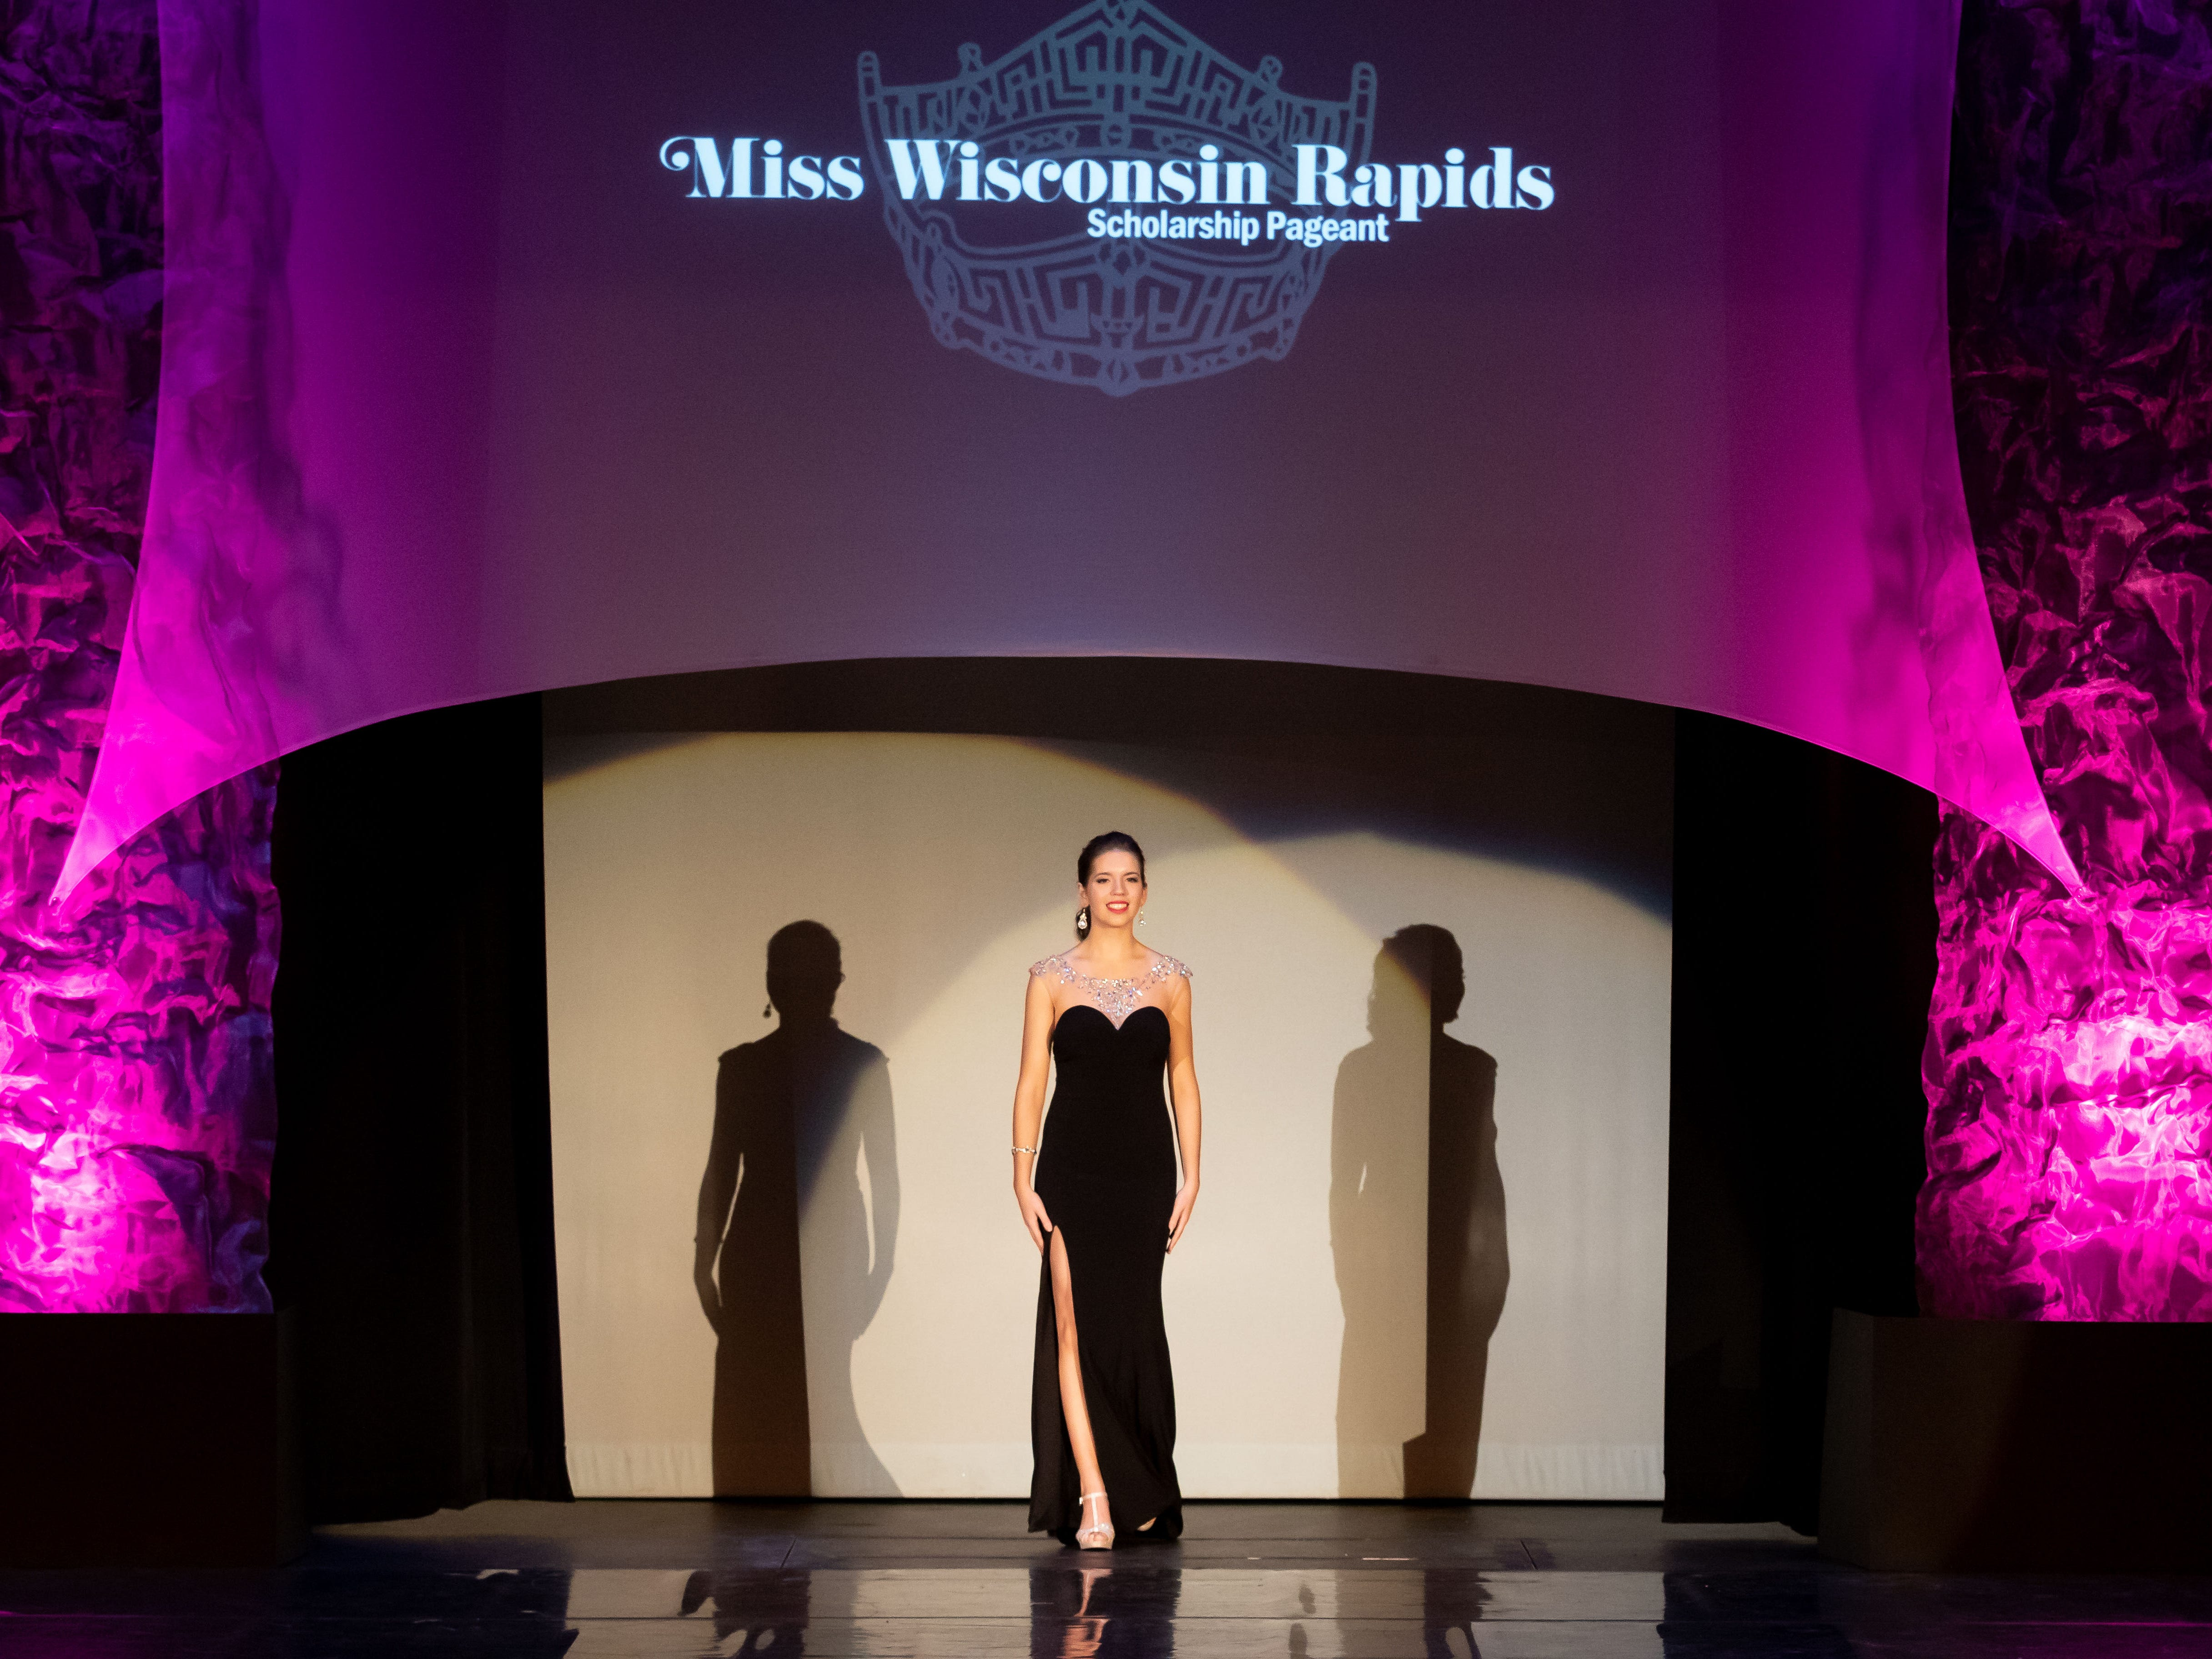 Mackenzie Mattheis competes in the Evening Wear competition during the 2019 Miss Wisconsin Rapids Area Scholarship Pageant on Saturday, Oct. 27, 2018, at the Performing Arts Center of Wisconsin Rapids.